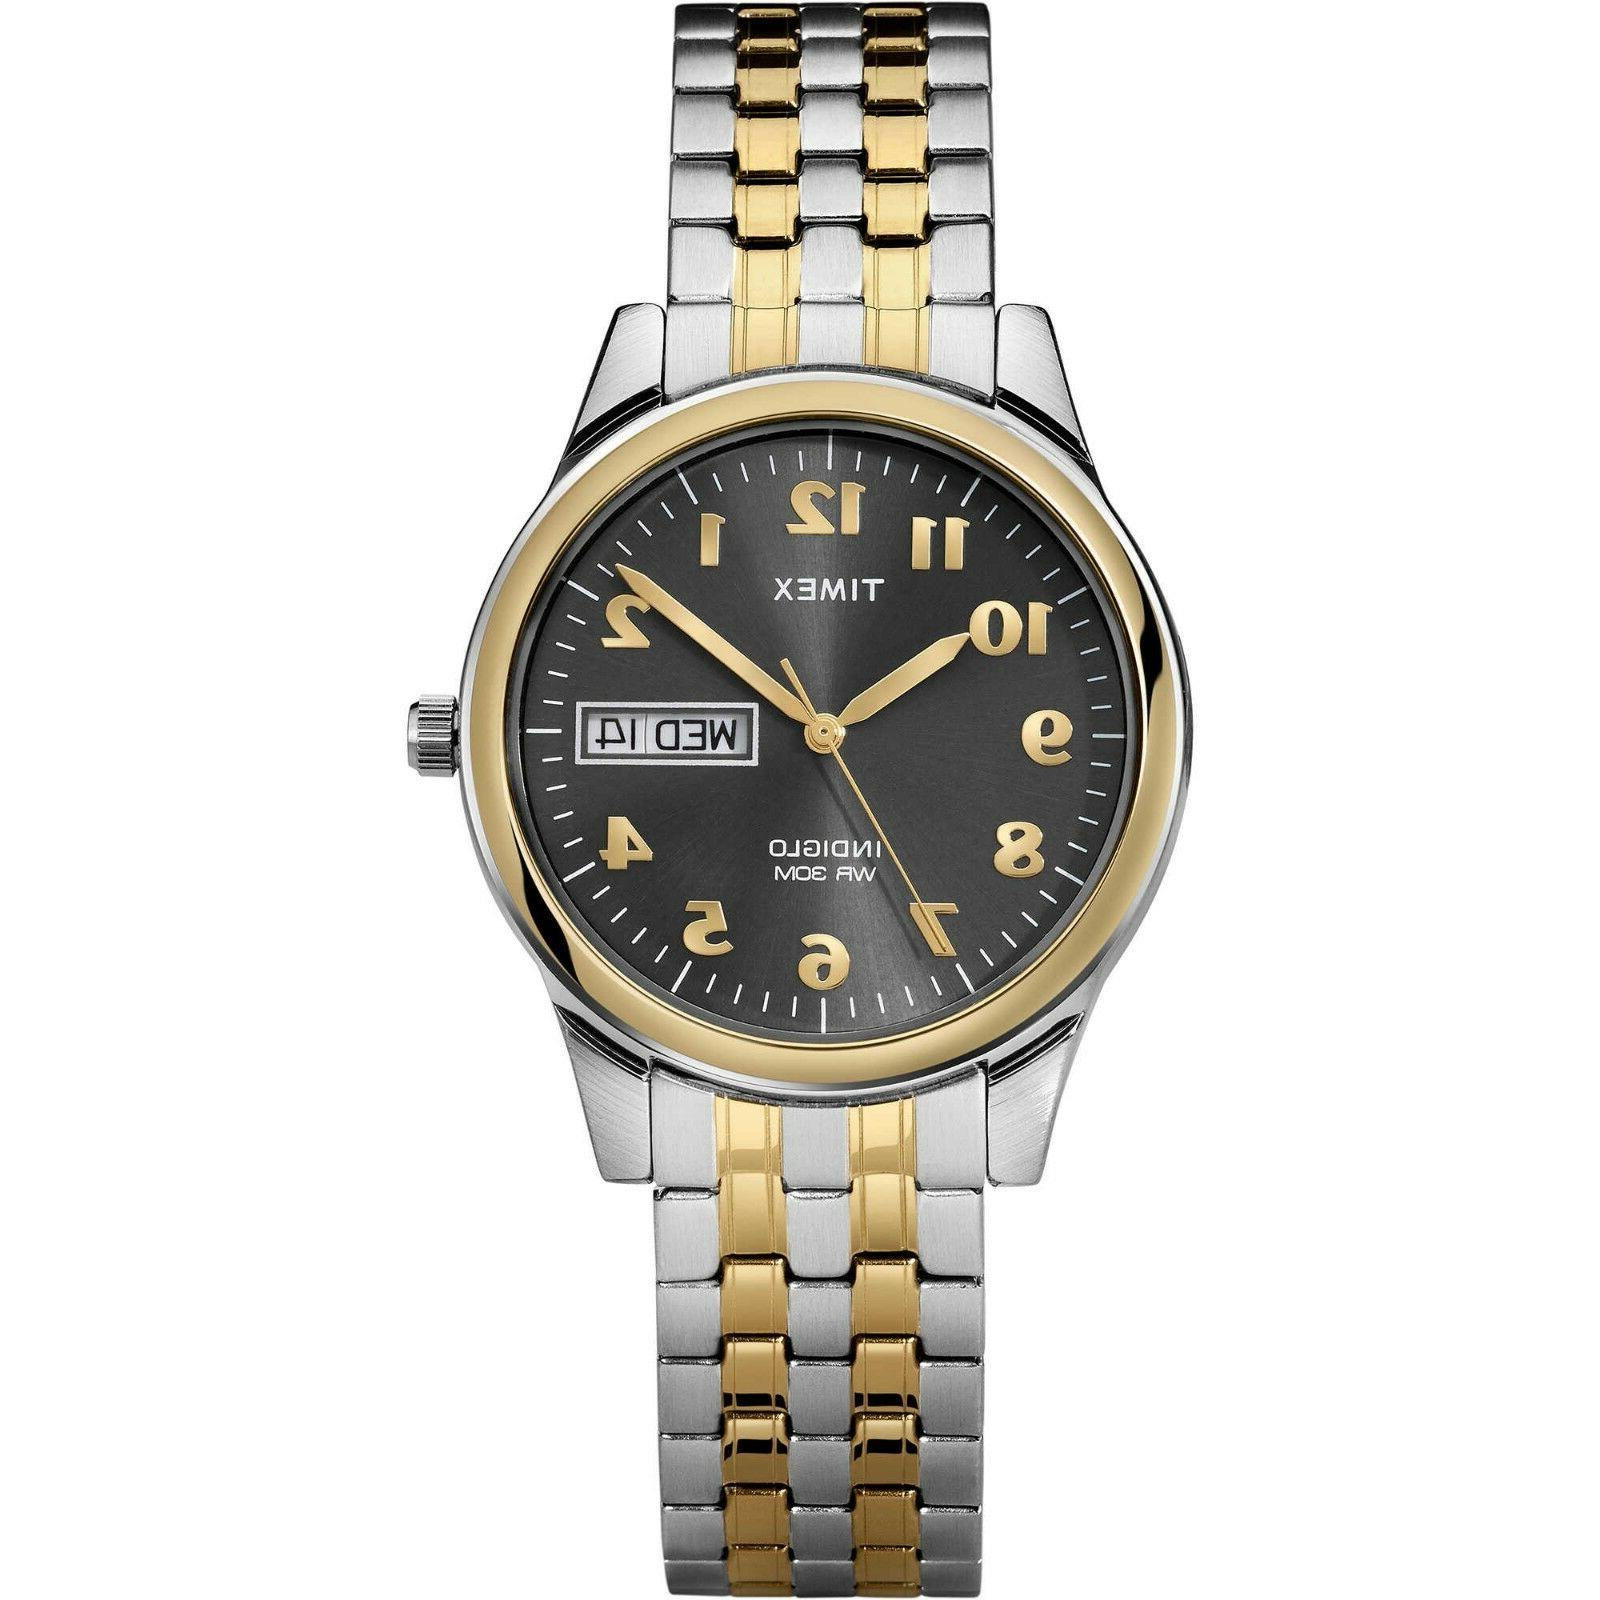 Timex Charles Street Men's Watch Two-Tone Stainless Steel w/